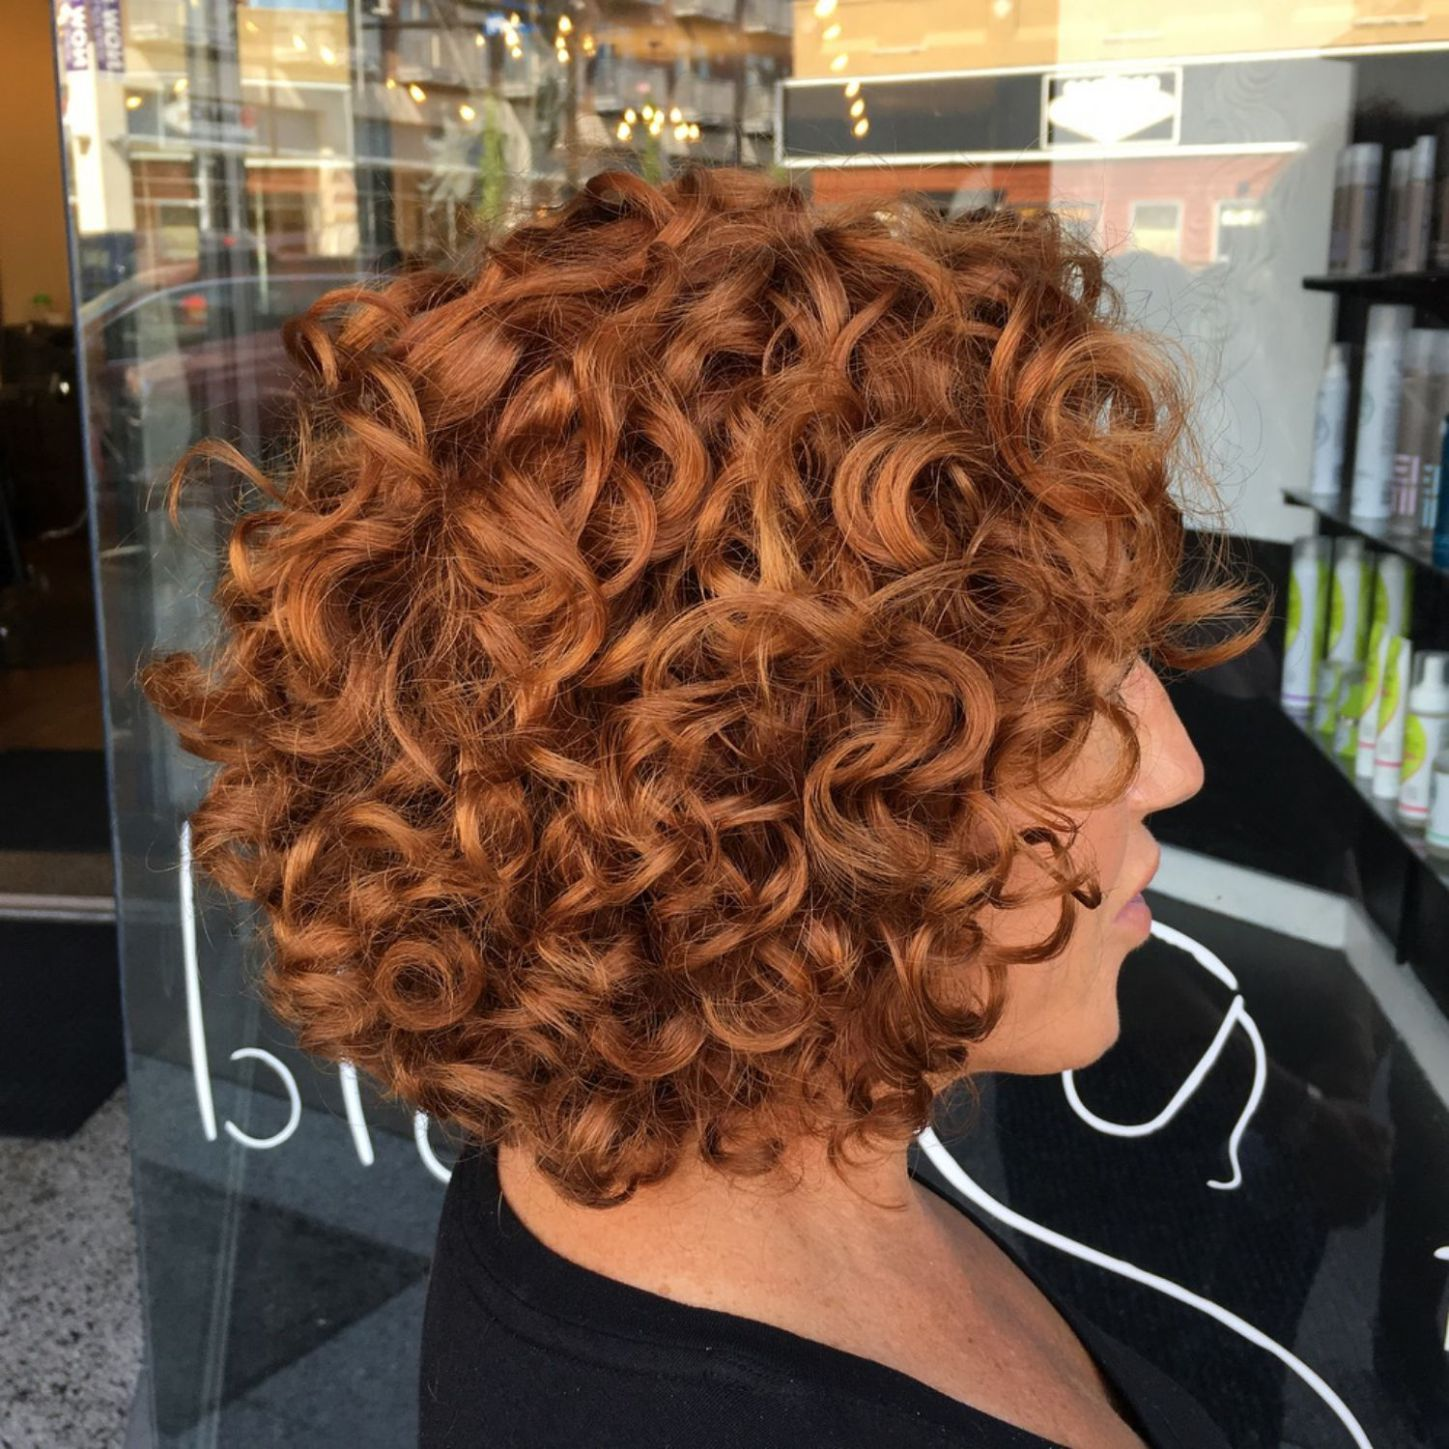 65 Different Versions of Curly Bob Hairstyle   Curly bob hairstyles, Bob hairstyles, Red bob hair